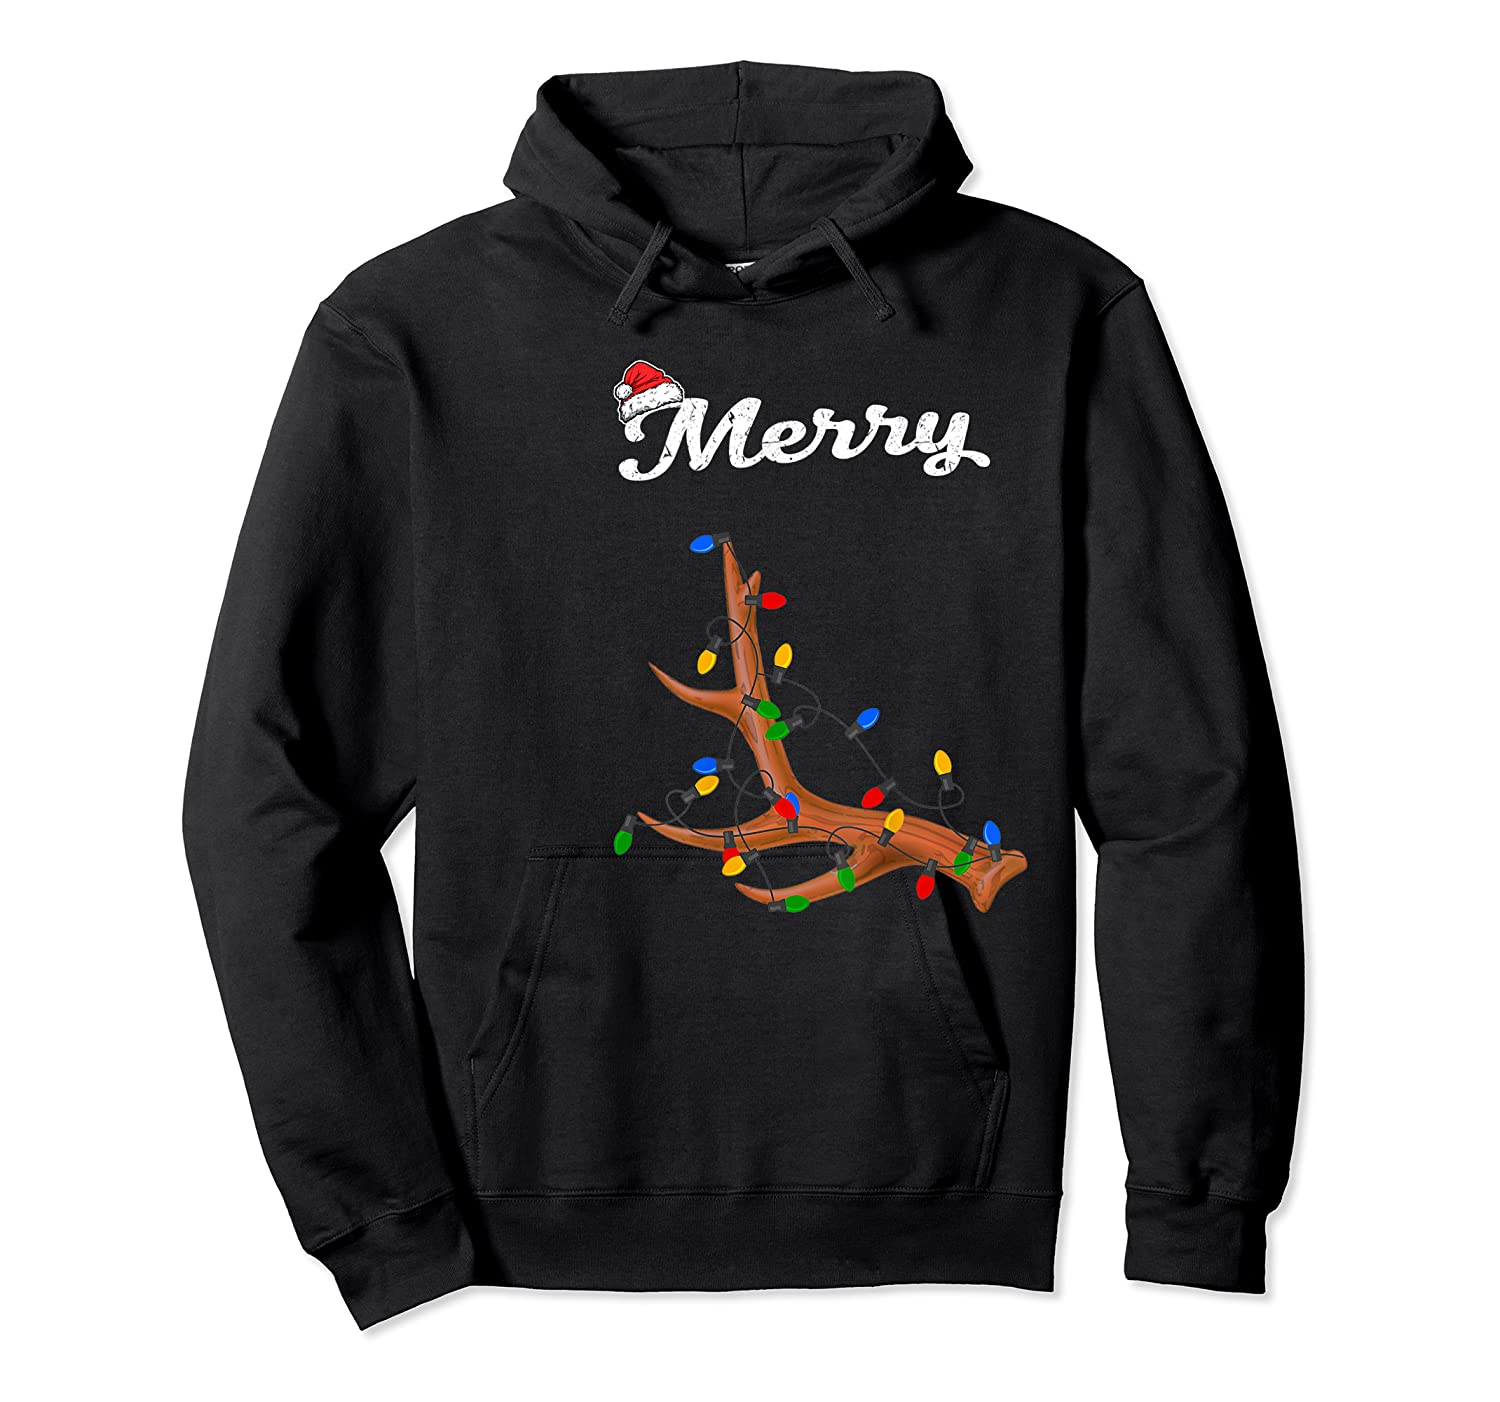 Merry Christmas Deer Antler Couples Matching Costume Gift Shirts Unisex Pullover Hoodie